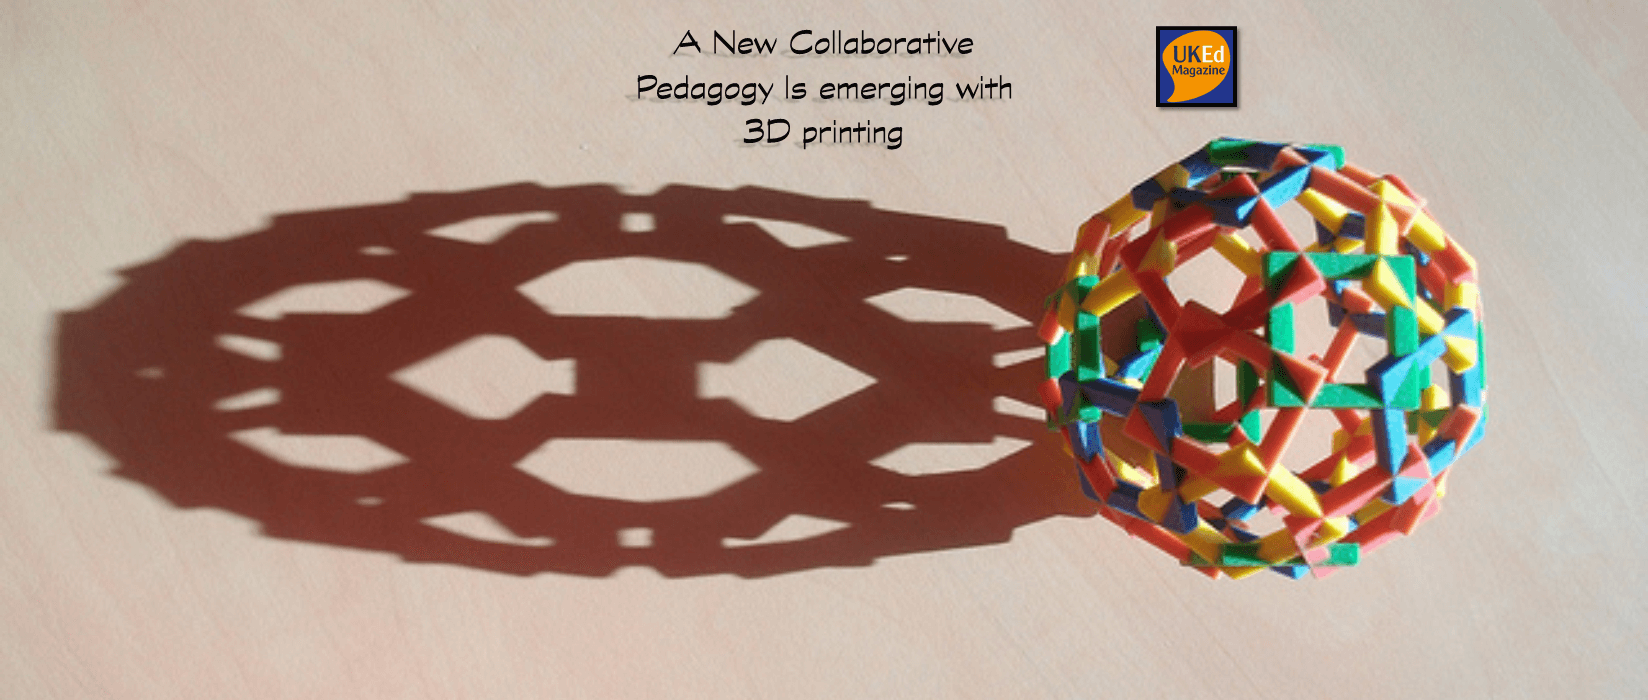 UKEdMag: A New Collaborative Pedagogy Is emerging with 3D printing by @coyle_kat – UKEdChat